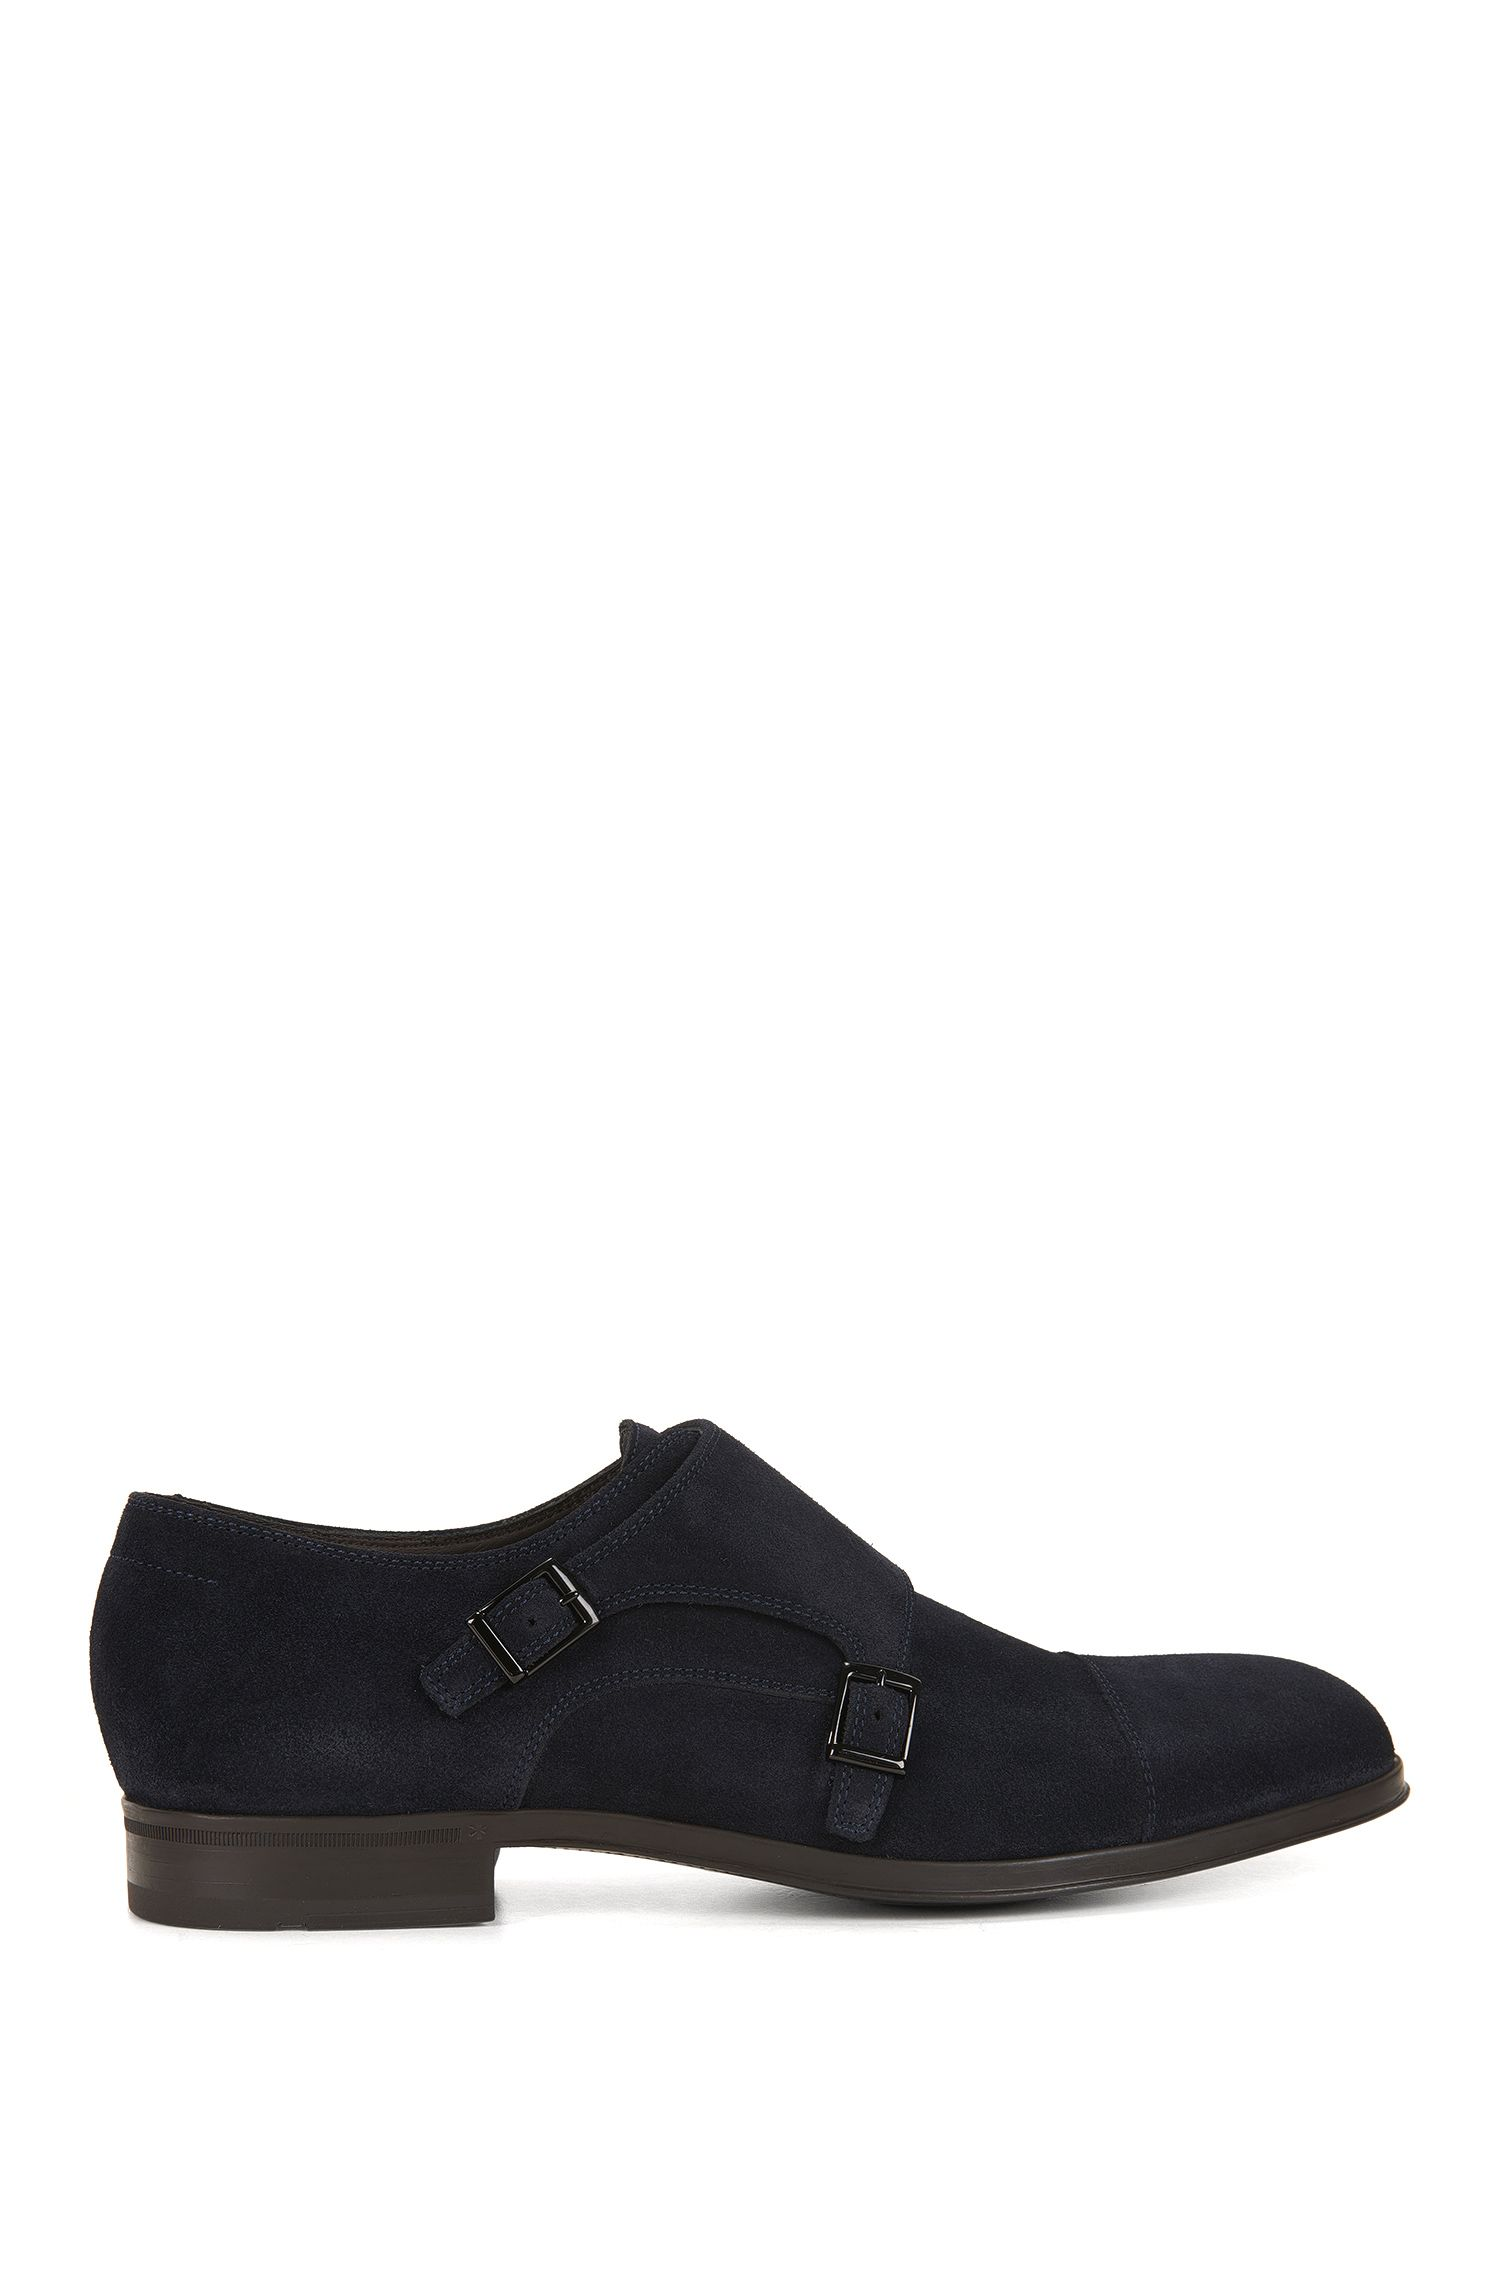 Monk shoes in soft suede